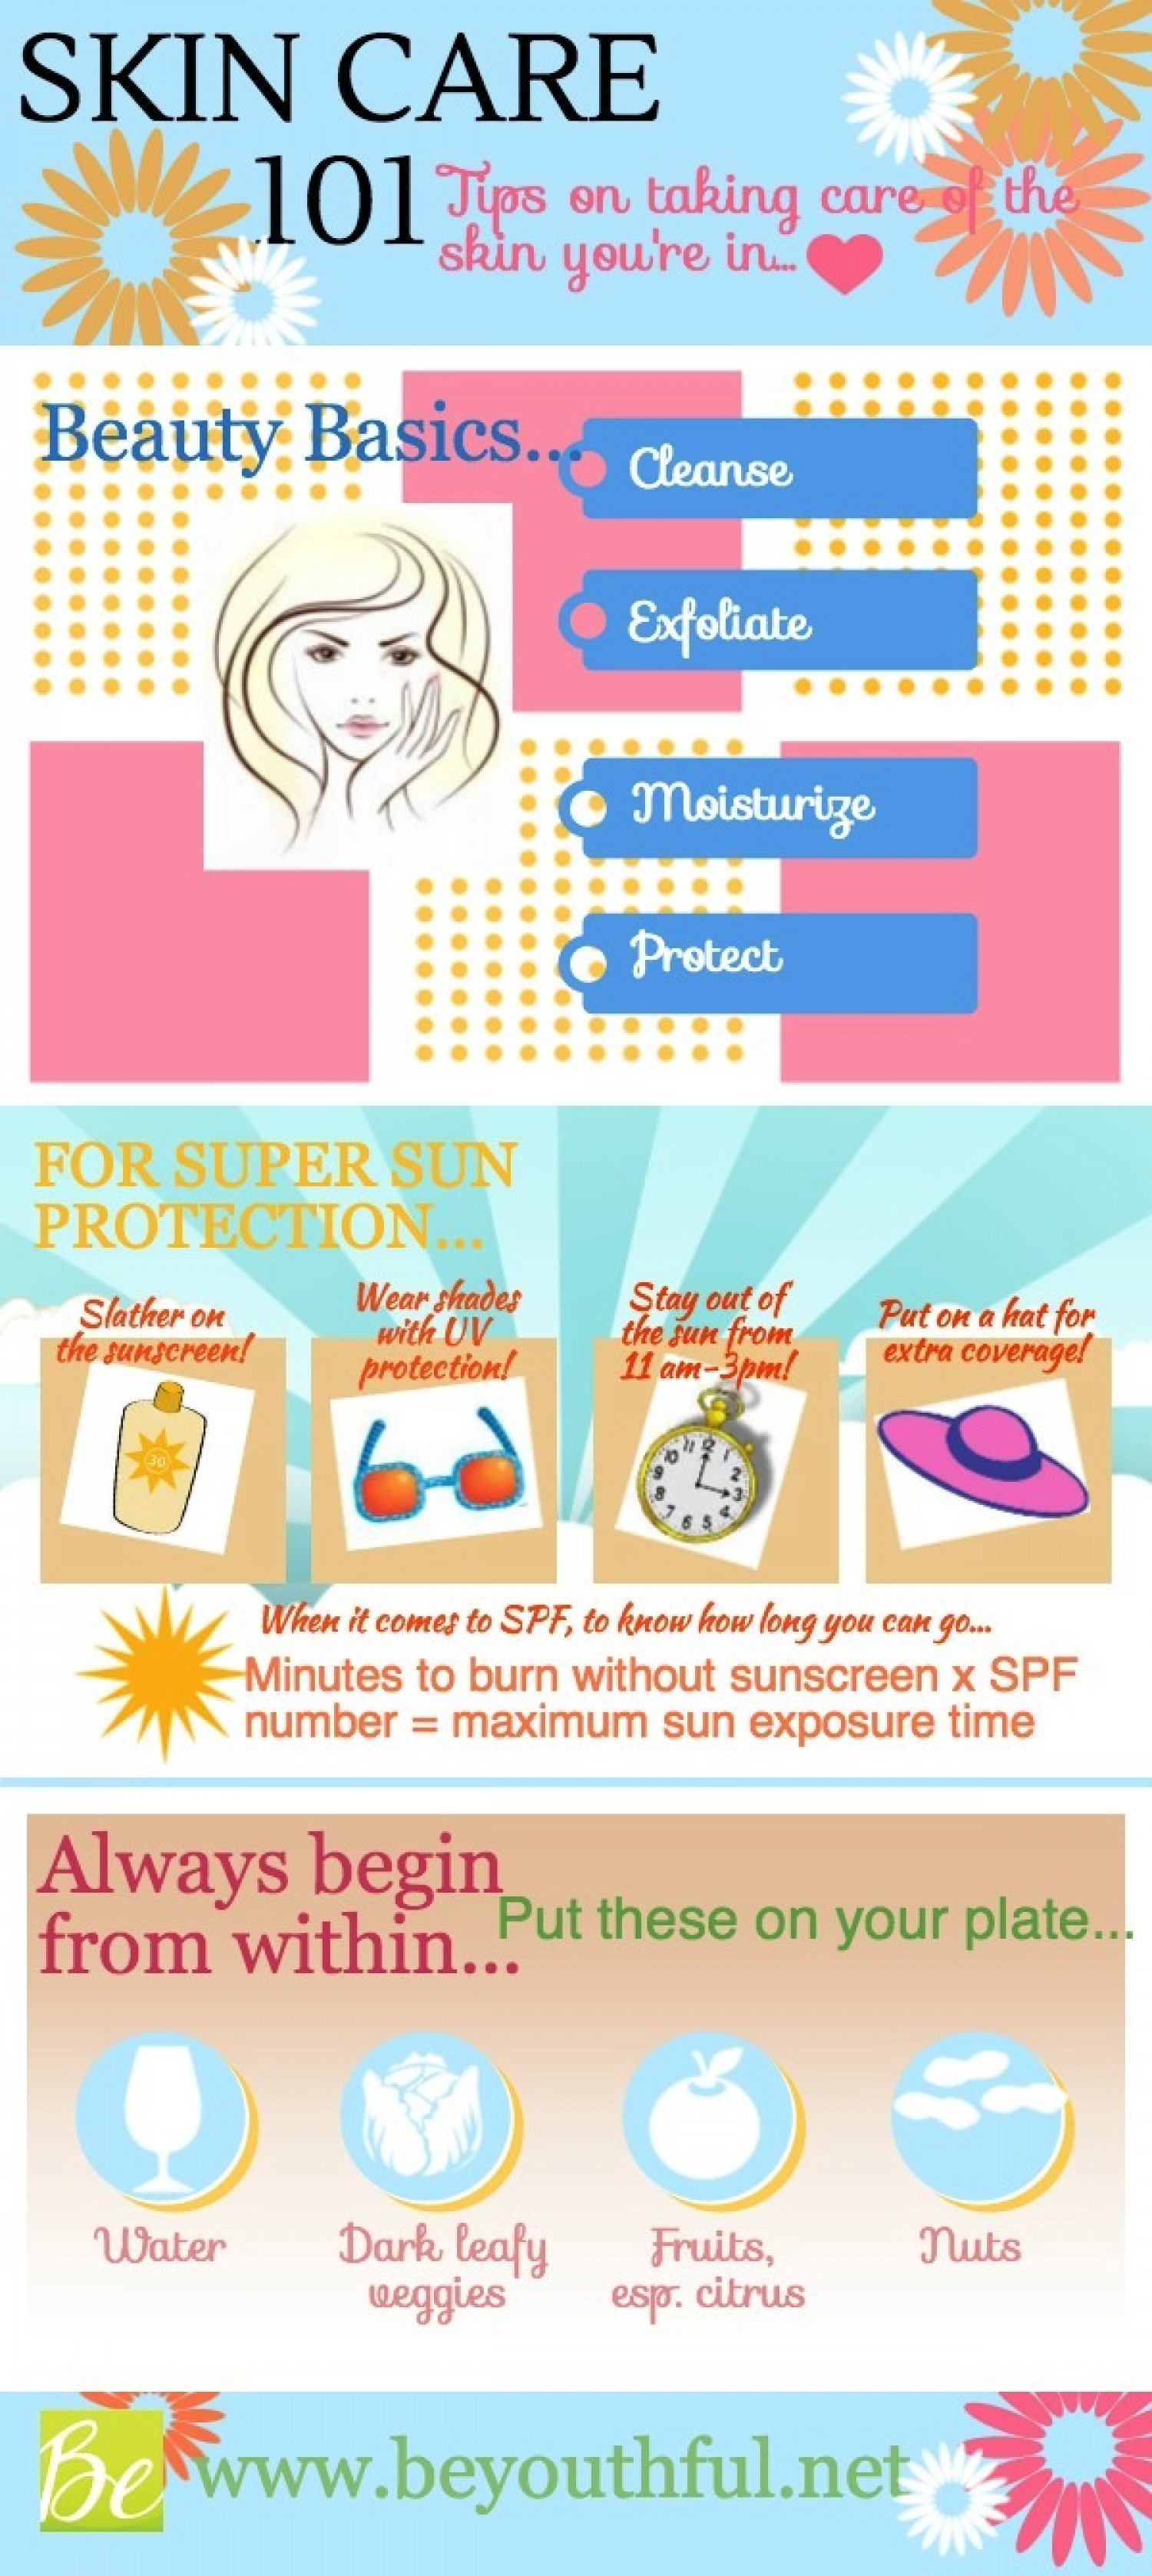 Skin Care 101: Tips On Taking Care Of The Skin You're In Infographic